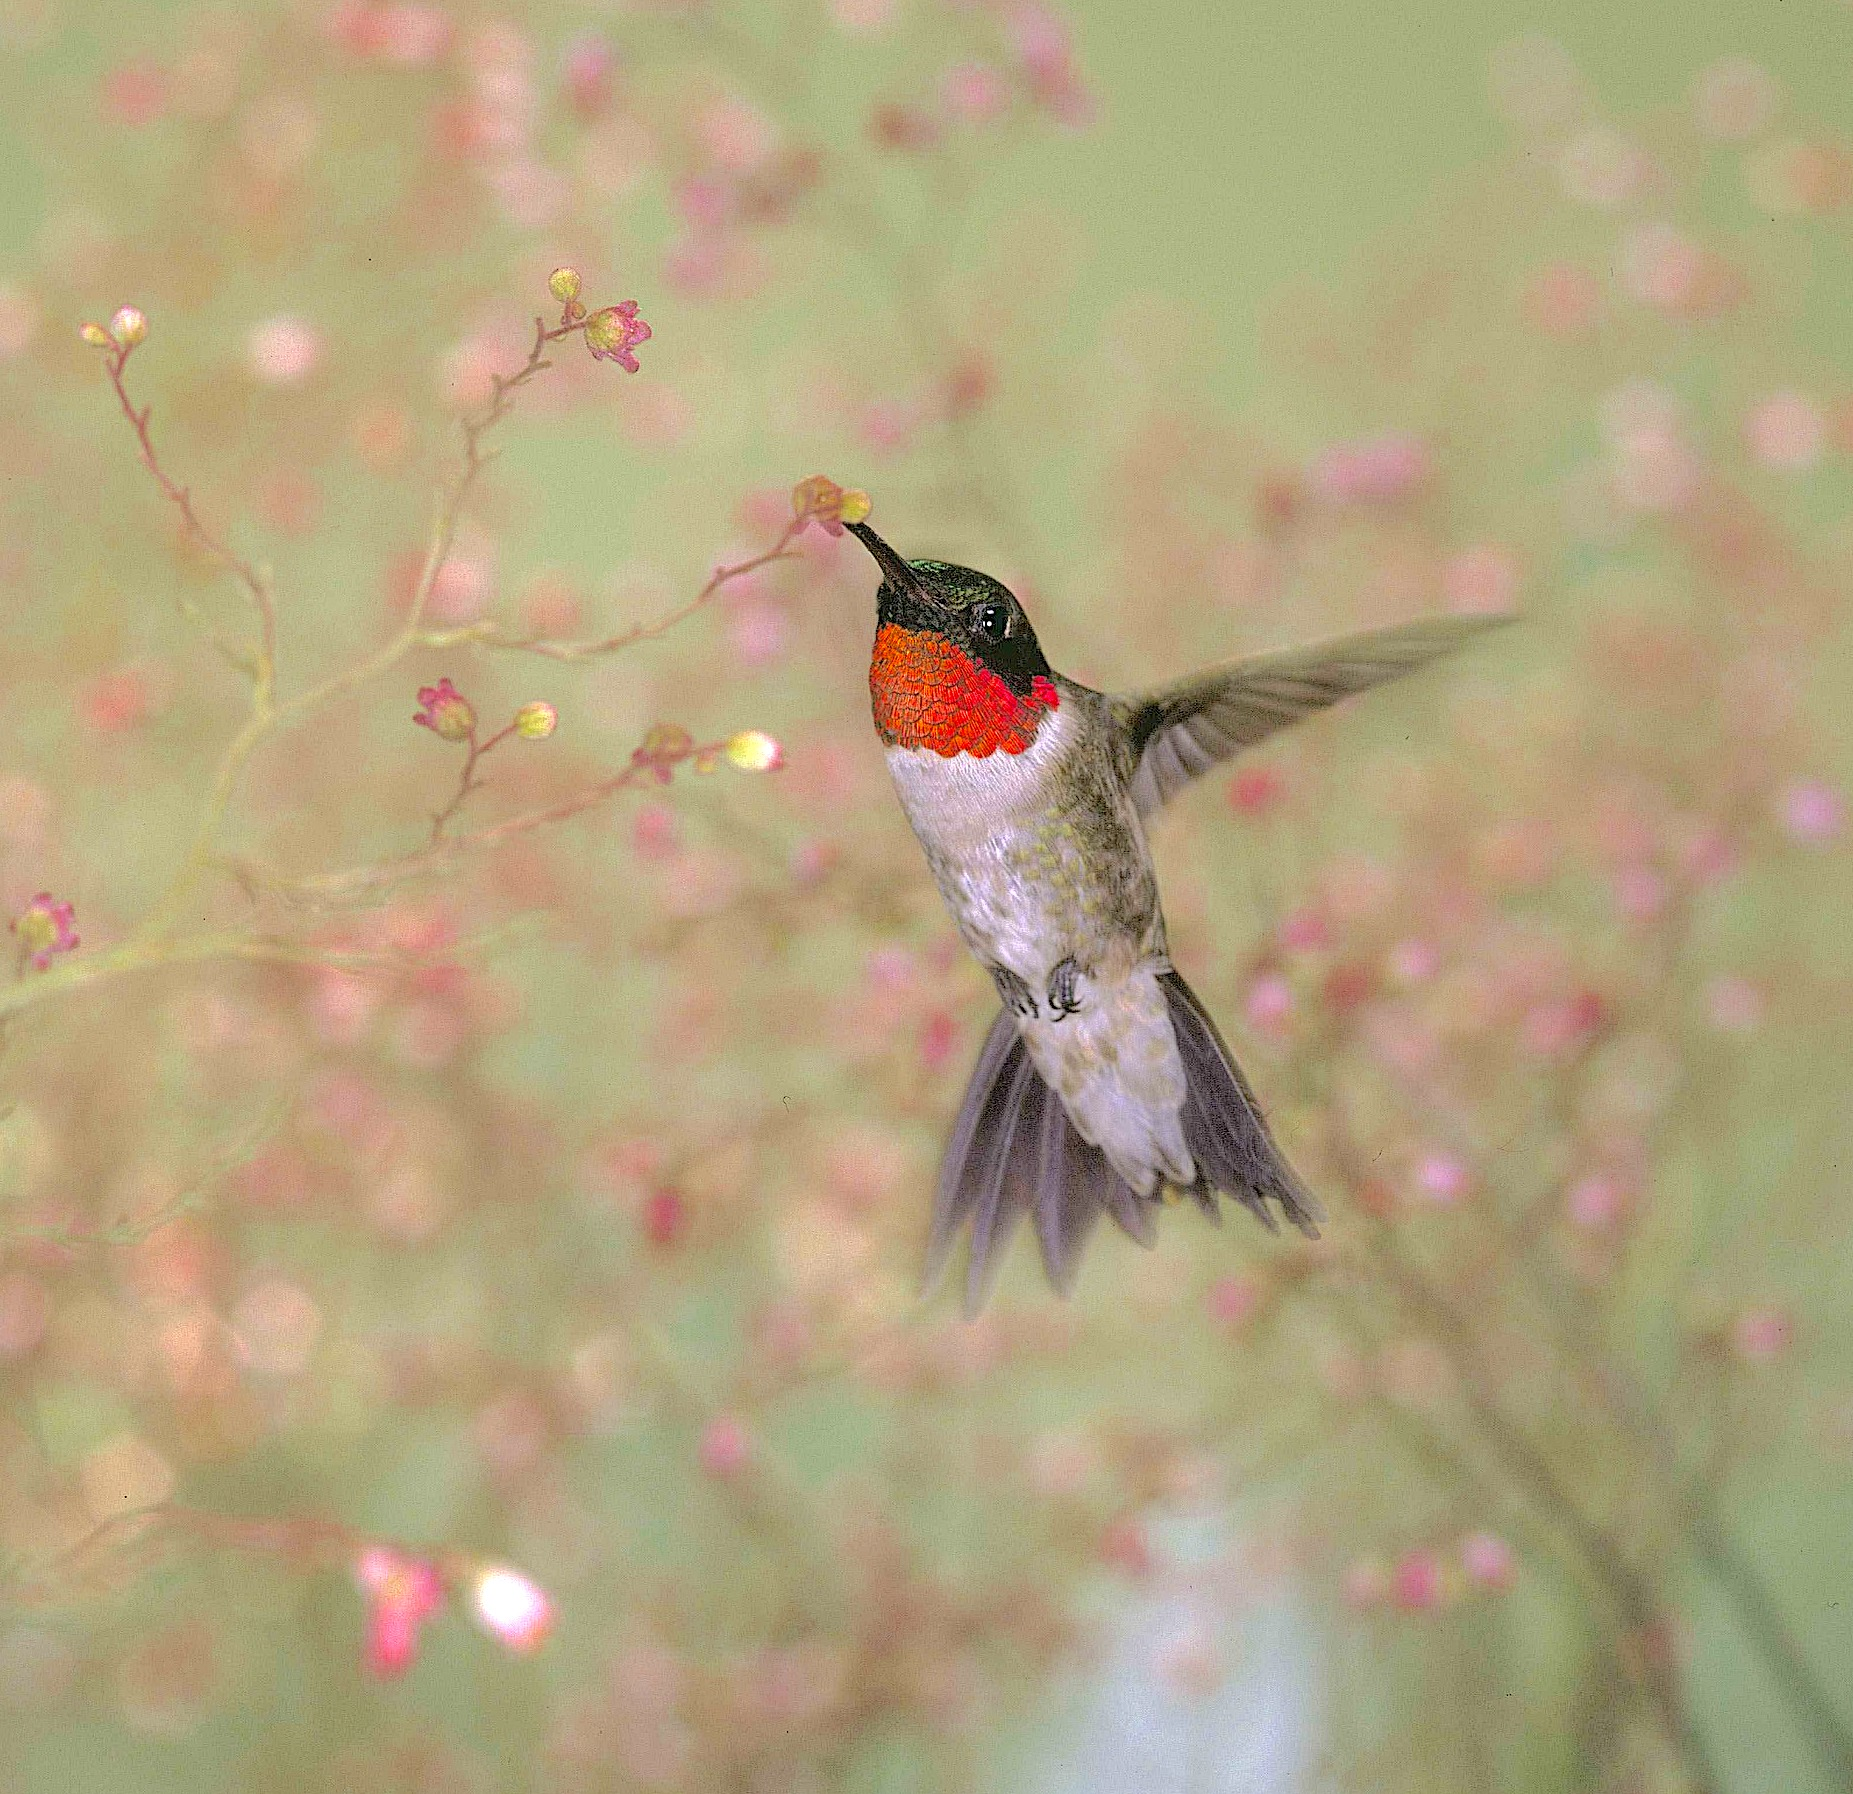 A picture of a Ruby-throated hummingbird feeding on pink flowers.